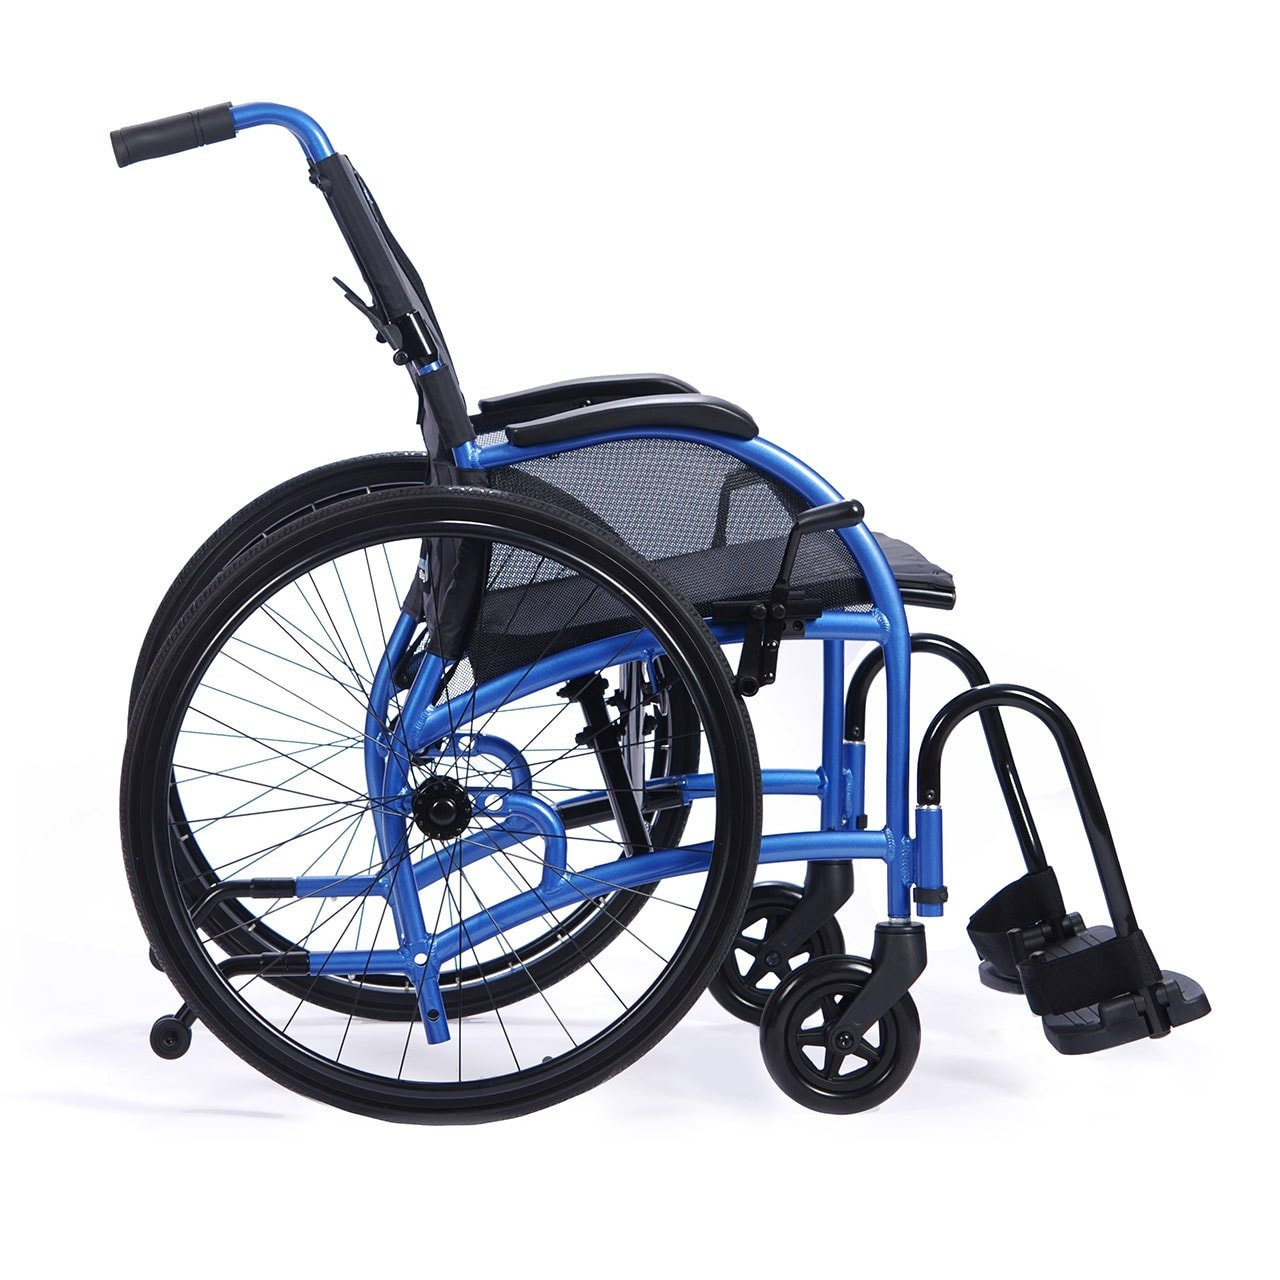 STRONGBACK 24 Wheelchair, Winner in the Medical, Rehabilitation and Health Care category at the 2018 German Design Council Awards, Regular Seat (16 inch)